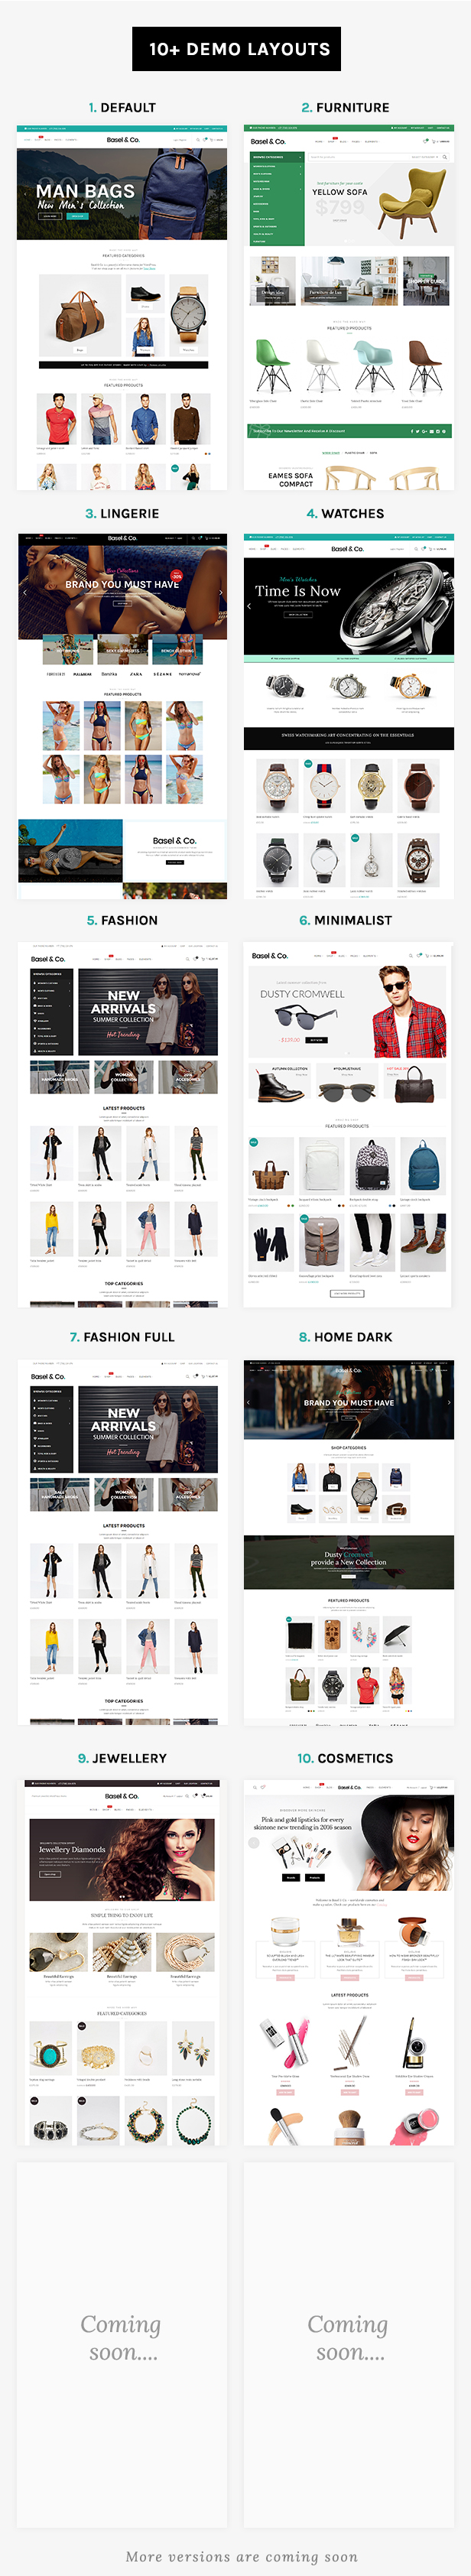 Basel - Ecommerce HTML Template - 4